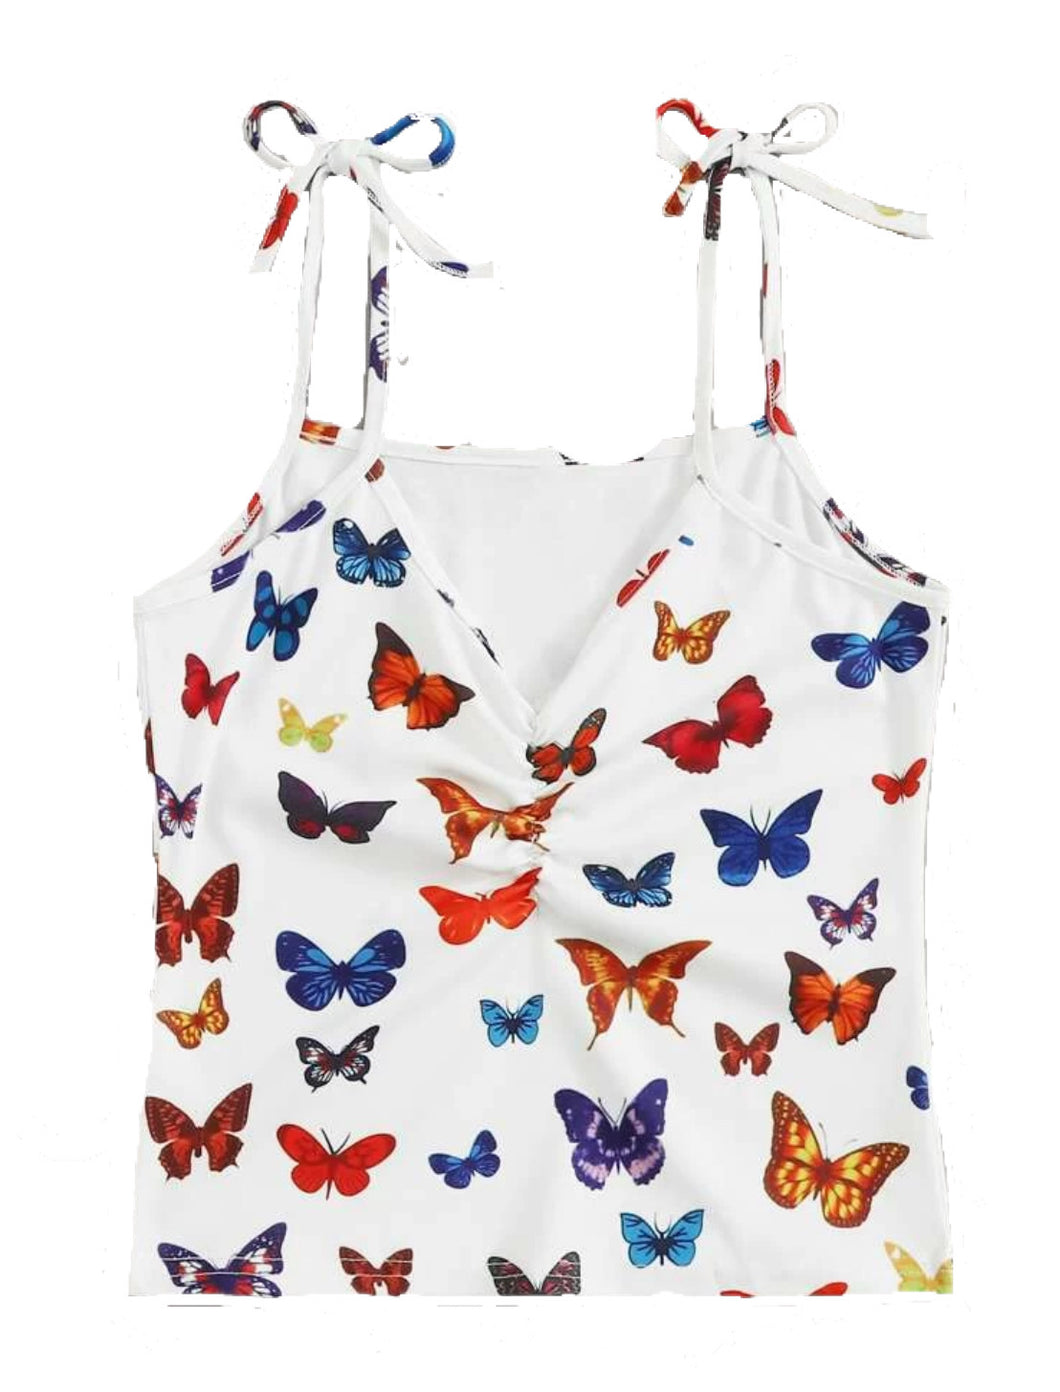 Butterfly Camisole